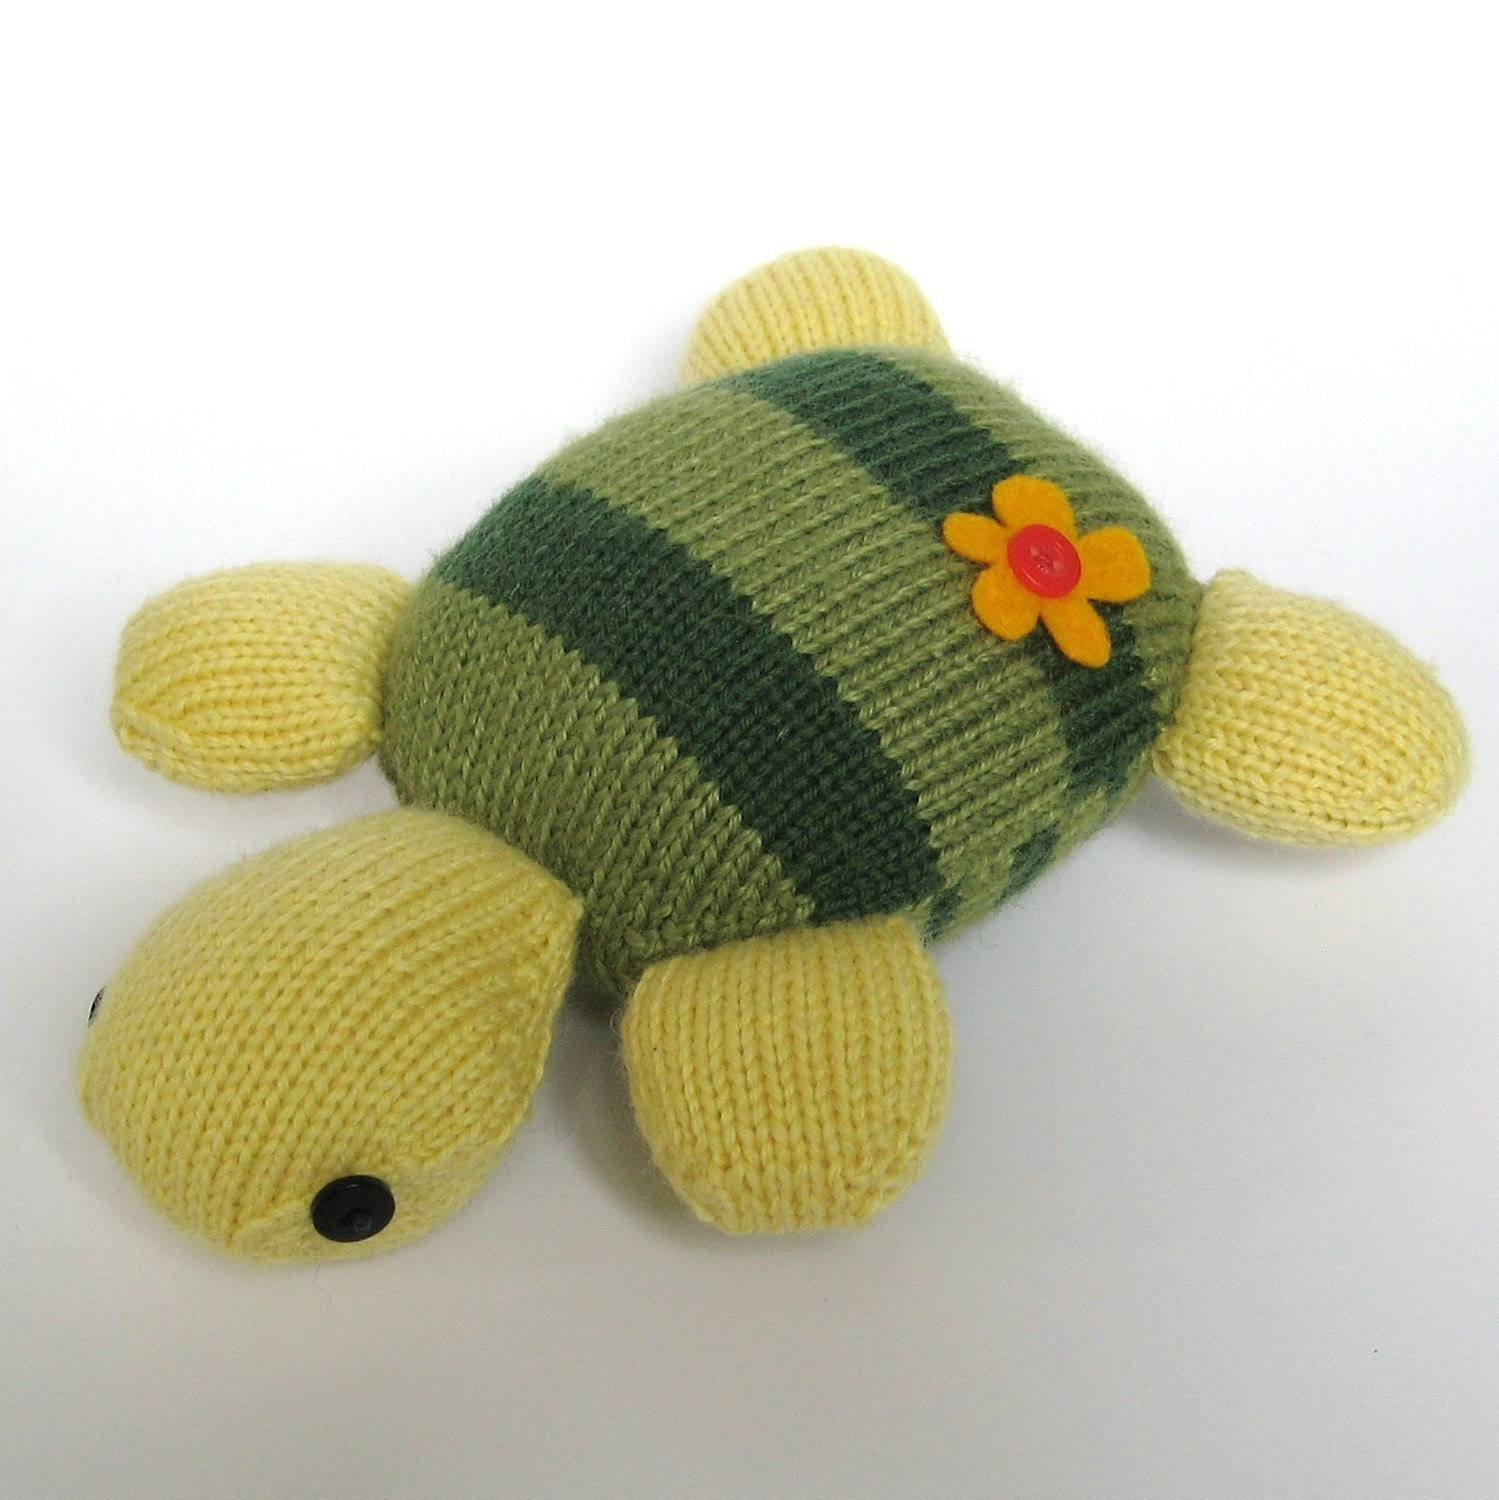 Knitted Turtle Pattern : Topsy Turvy Turtle toy animal knitting pattern by fluffandfuzz Craftjuice H...